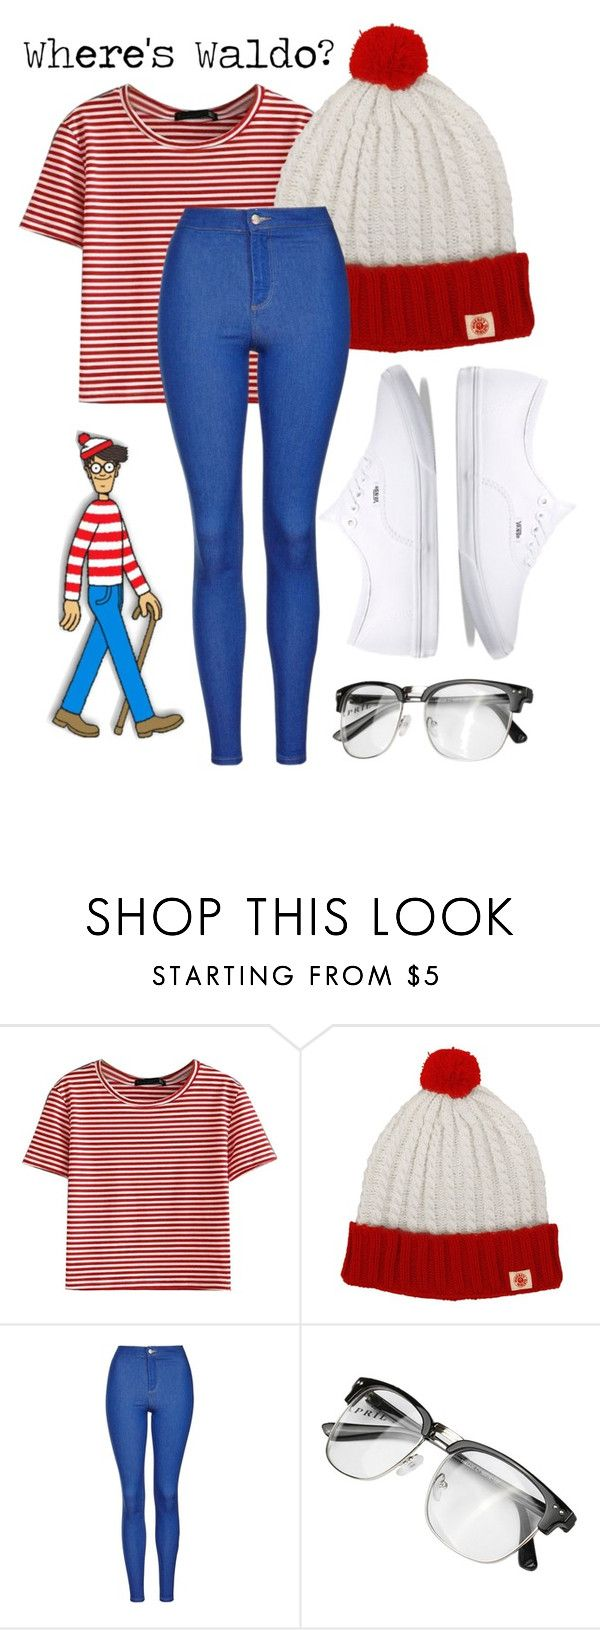 wheres waldo halloween costume by mejfun on polyvore featuring withchic - Boo Halloween Costumes